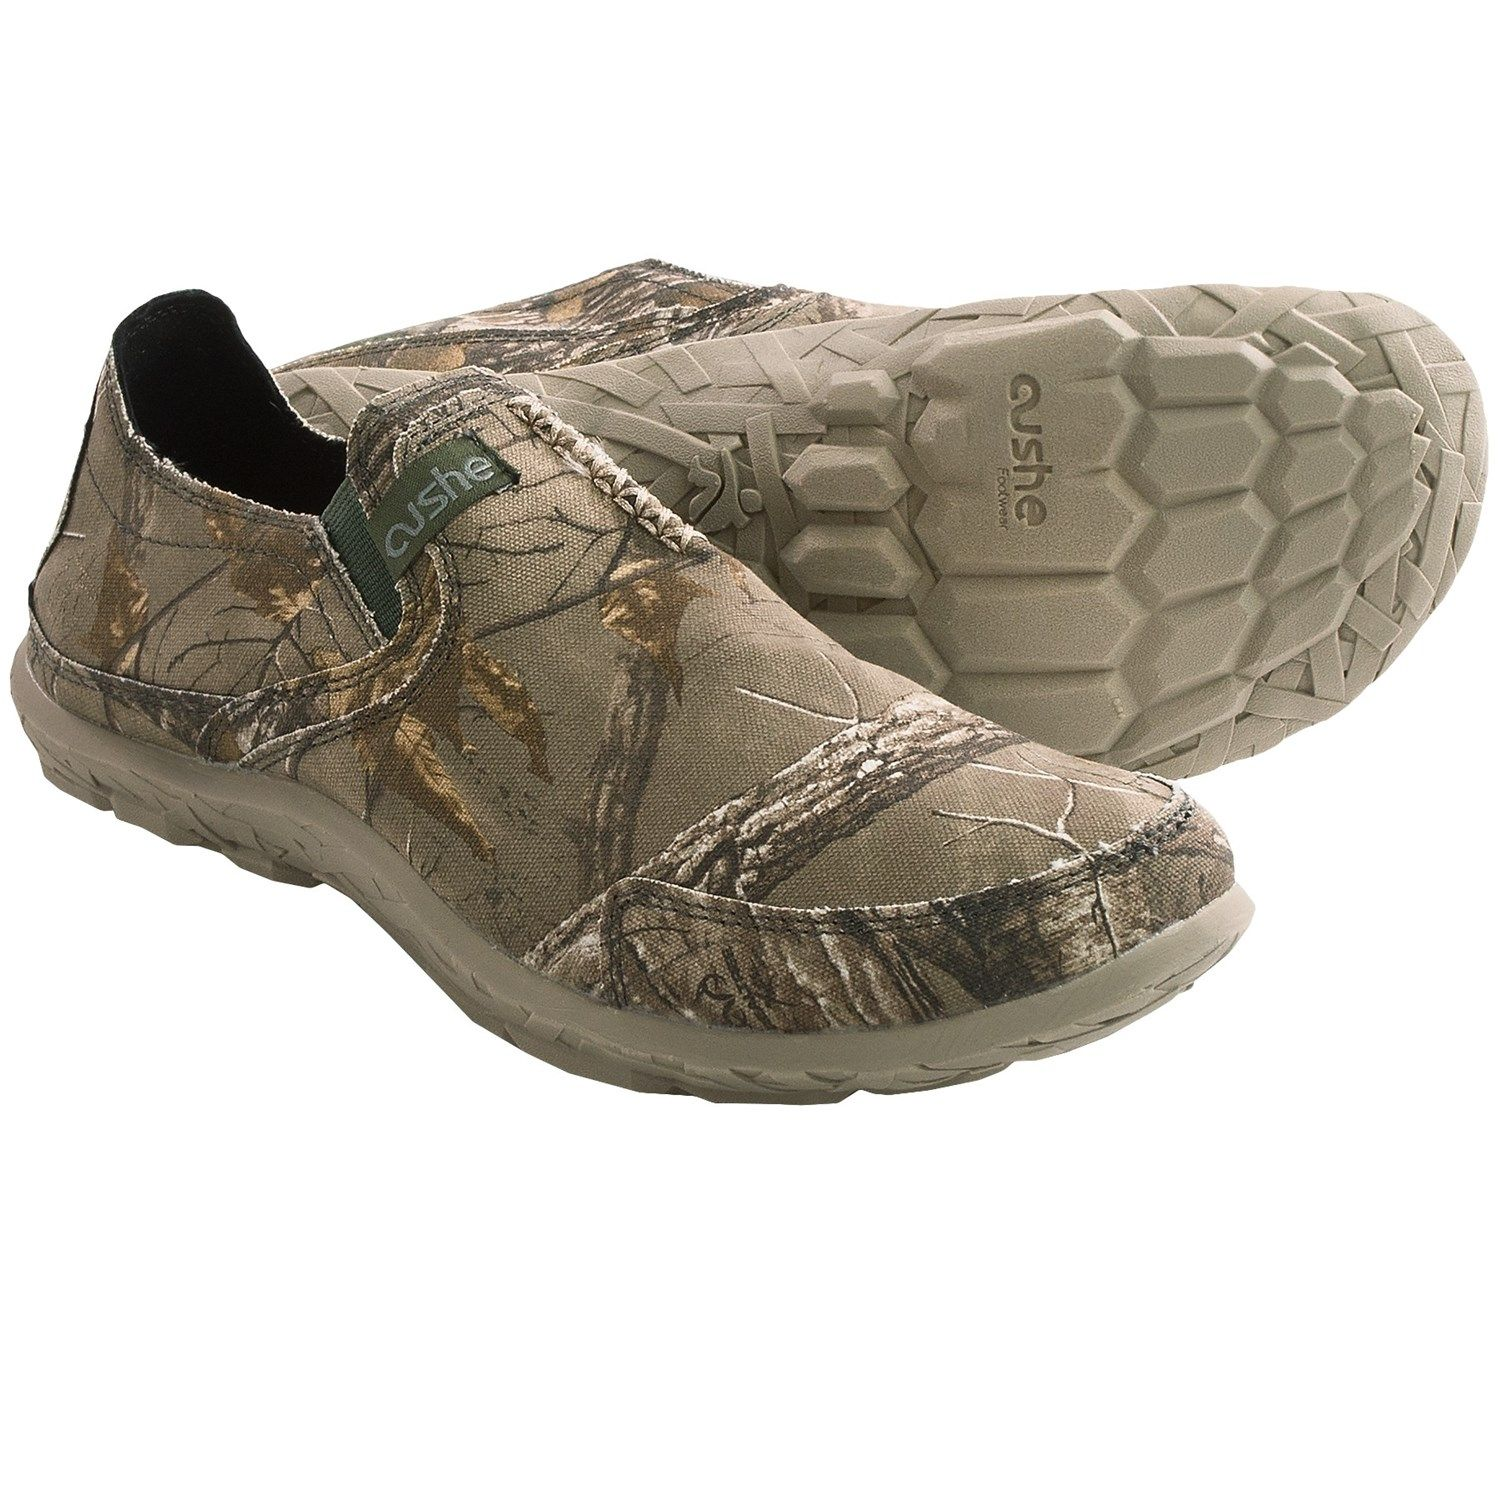 Cushe Slipper Realtree® Xtra Camo Shoes - Slip-Ons (For Men)